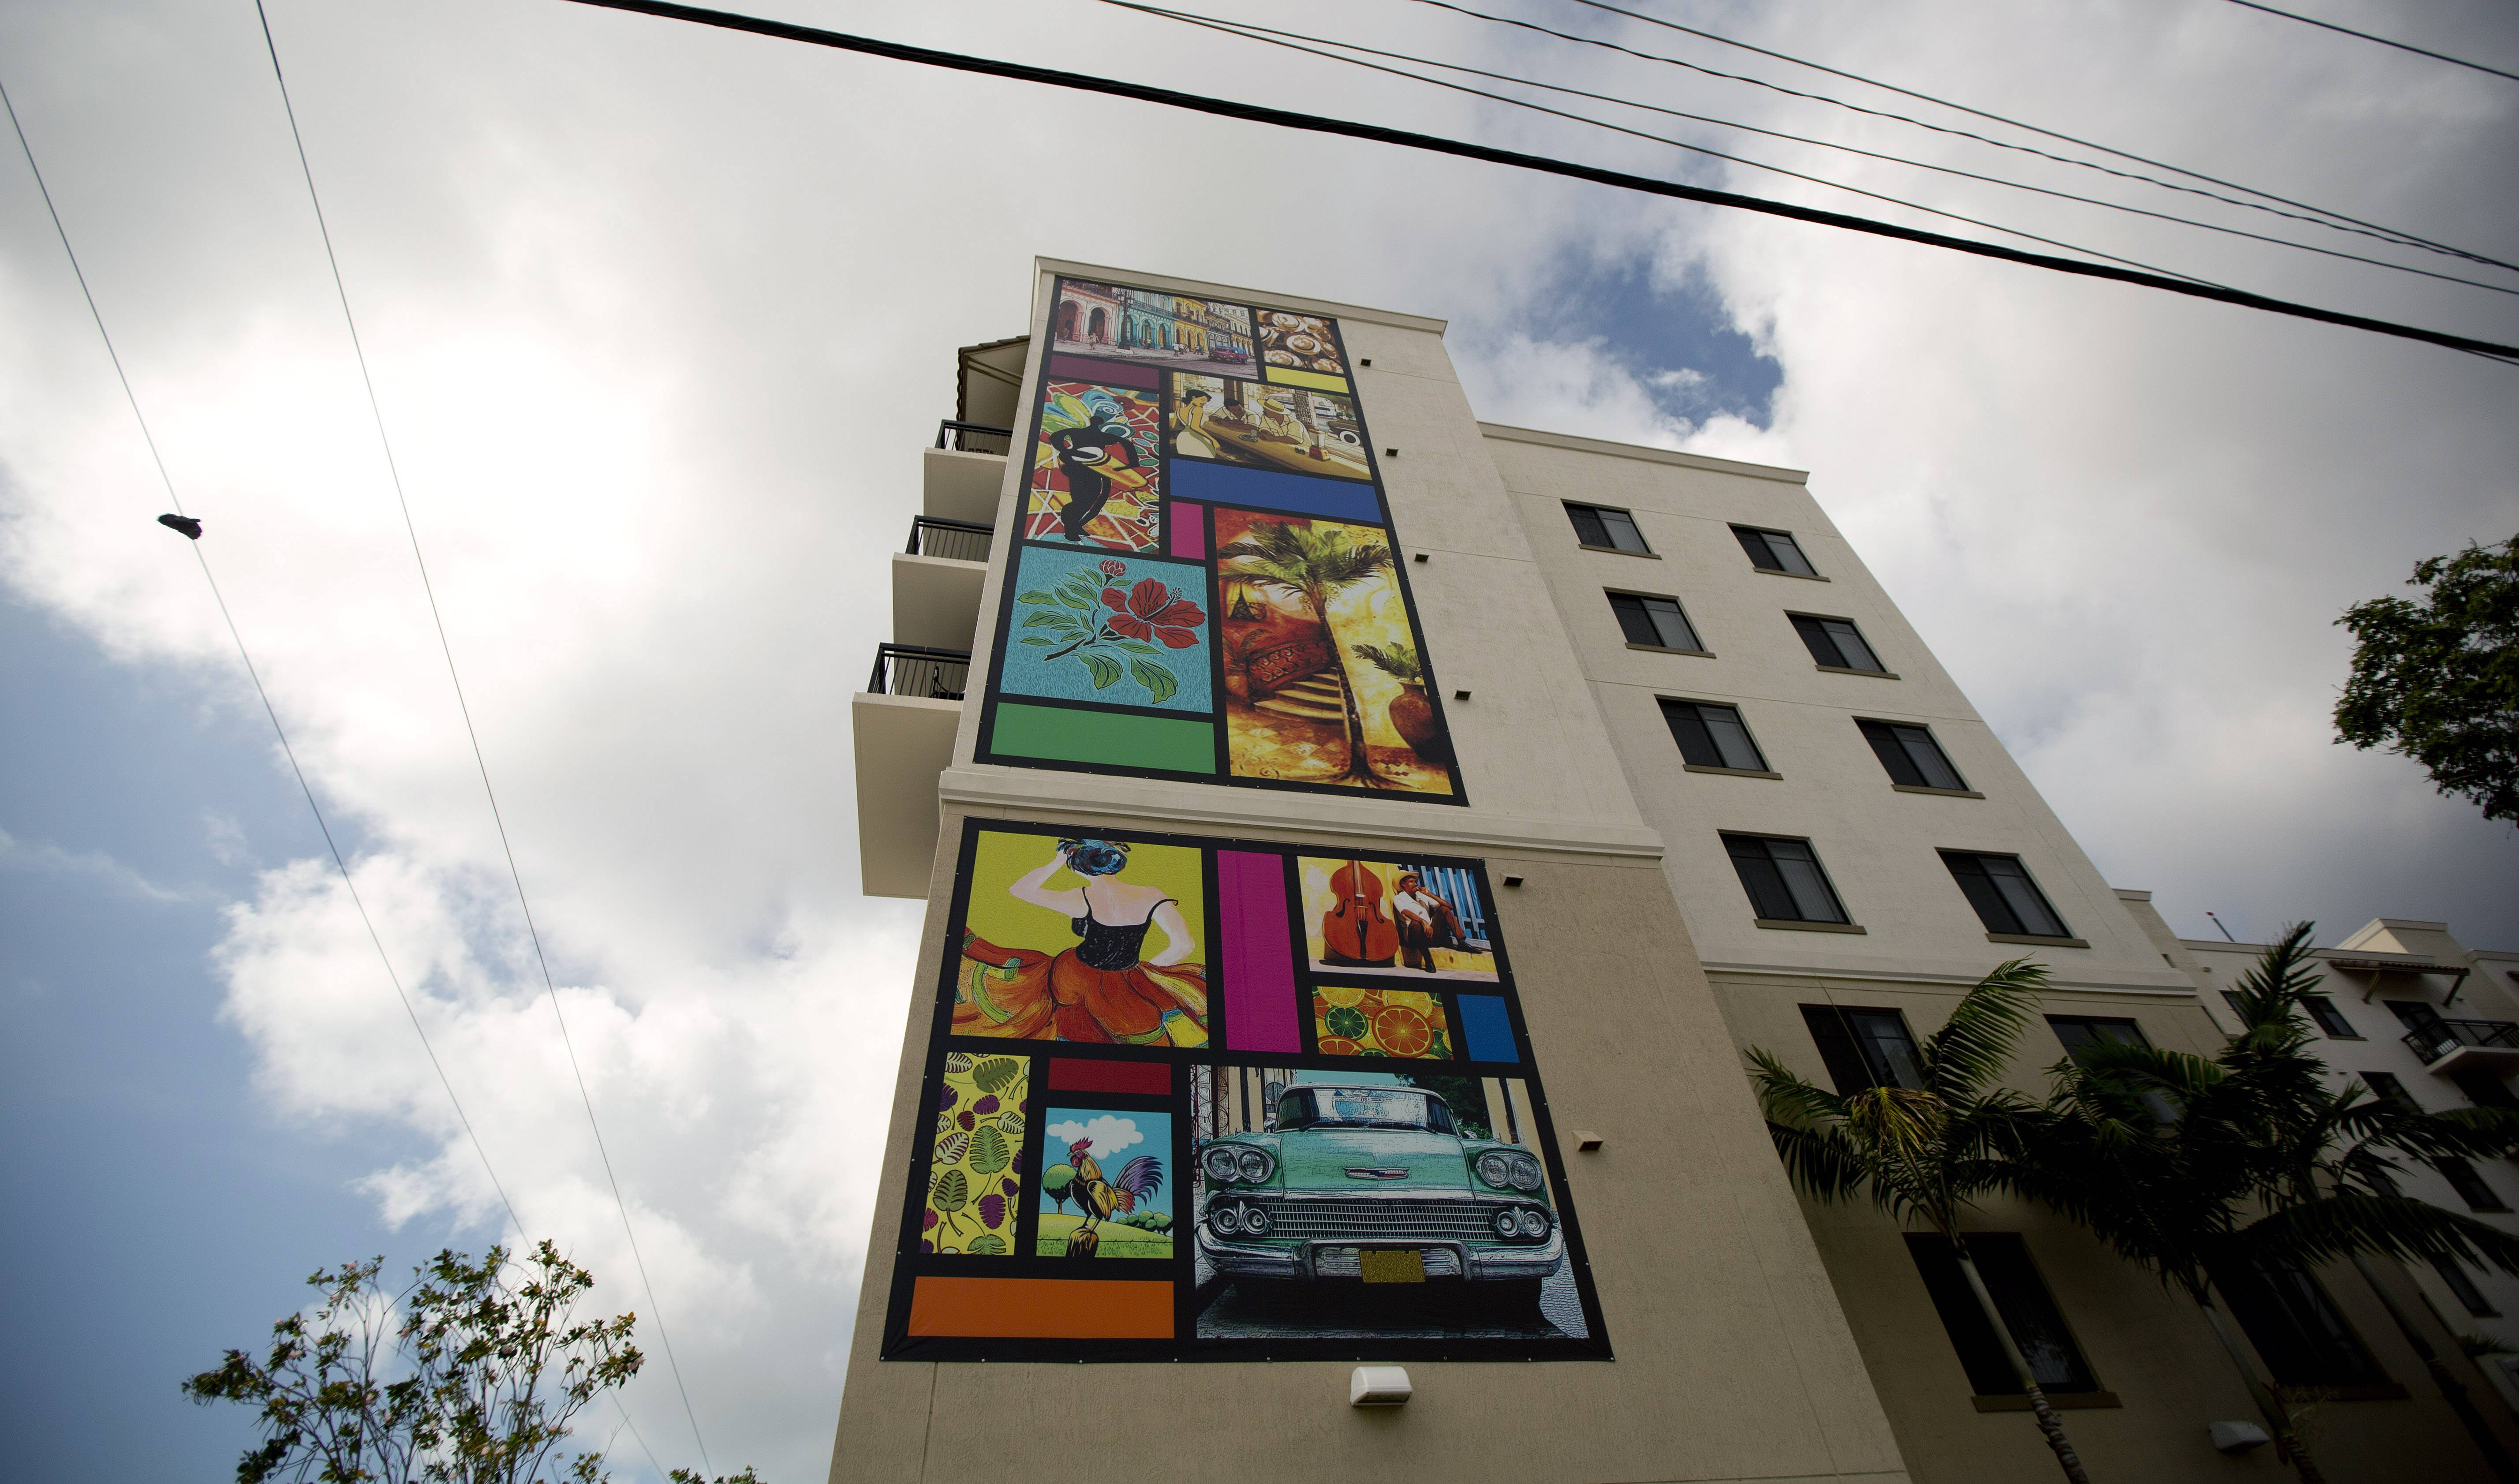 A large mural decorates the side of an apartment building along Calle Ocho (Eighth Street) in Miami's Little Havana.